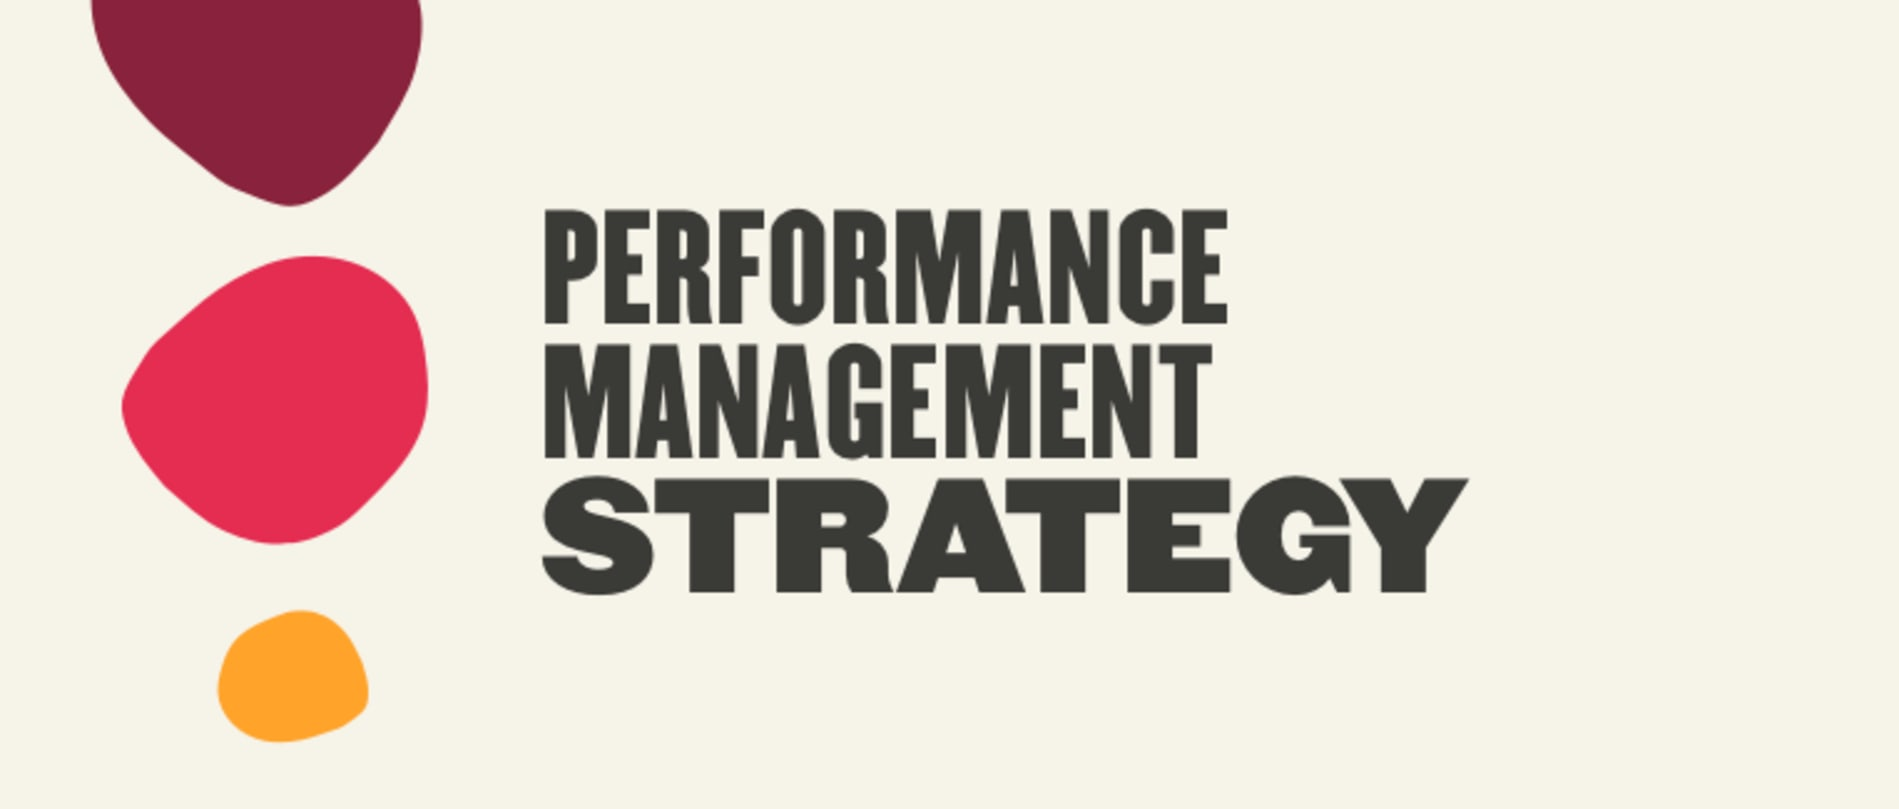 Performance management strategy for HR leaders - Performance-management-strategy-for-HR-leaders-_-Blog-img.png